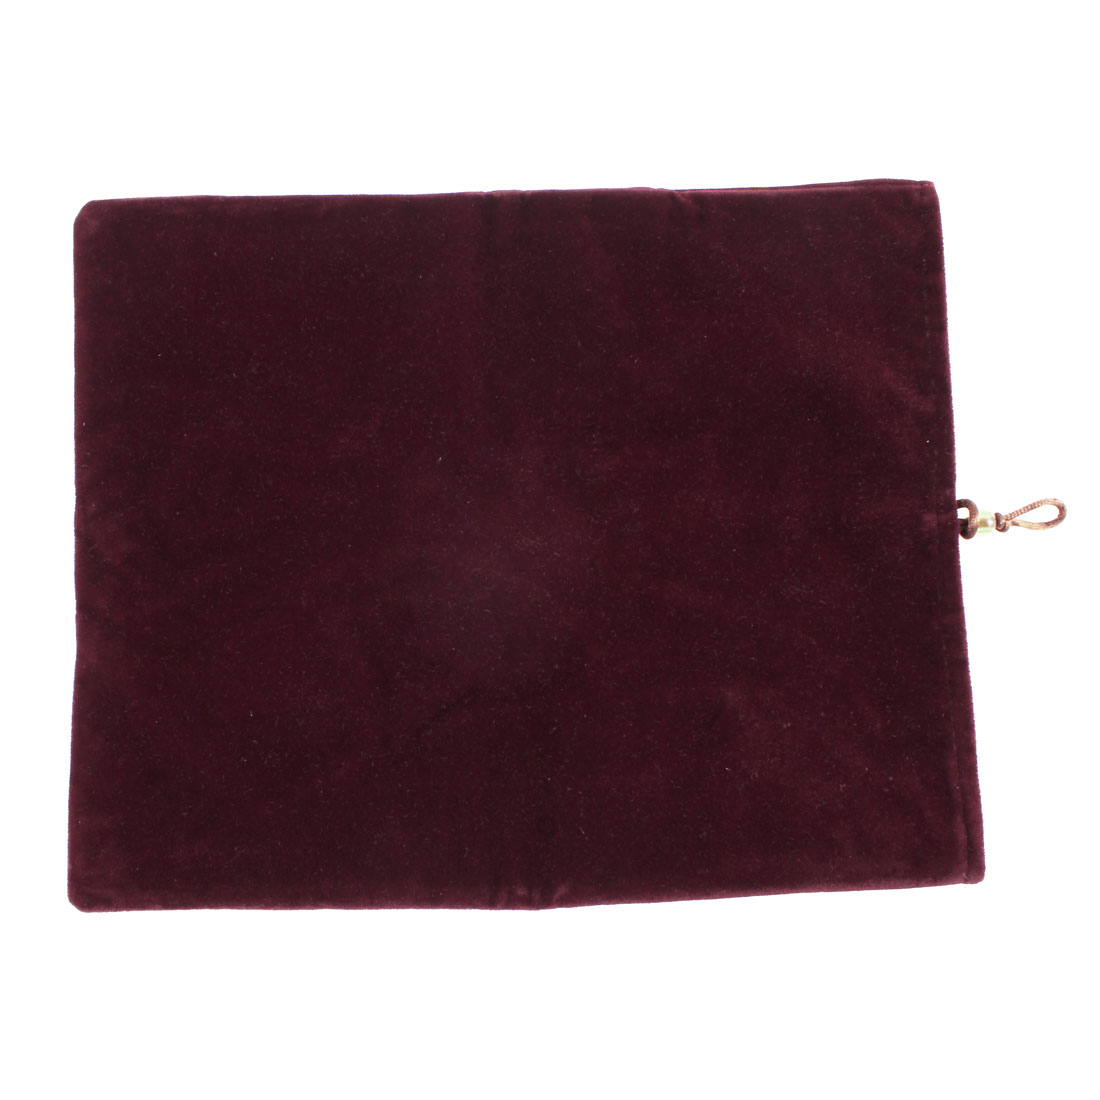 "Burgundy Velvet Universal Pouch Pocket Cover Sleeve Case for 9.7"" 10"" Tablet PC"